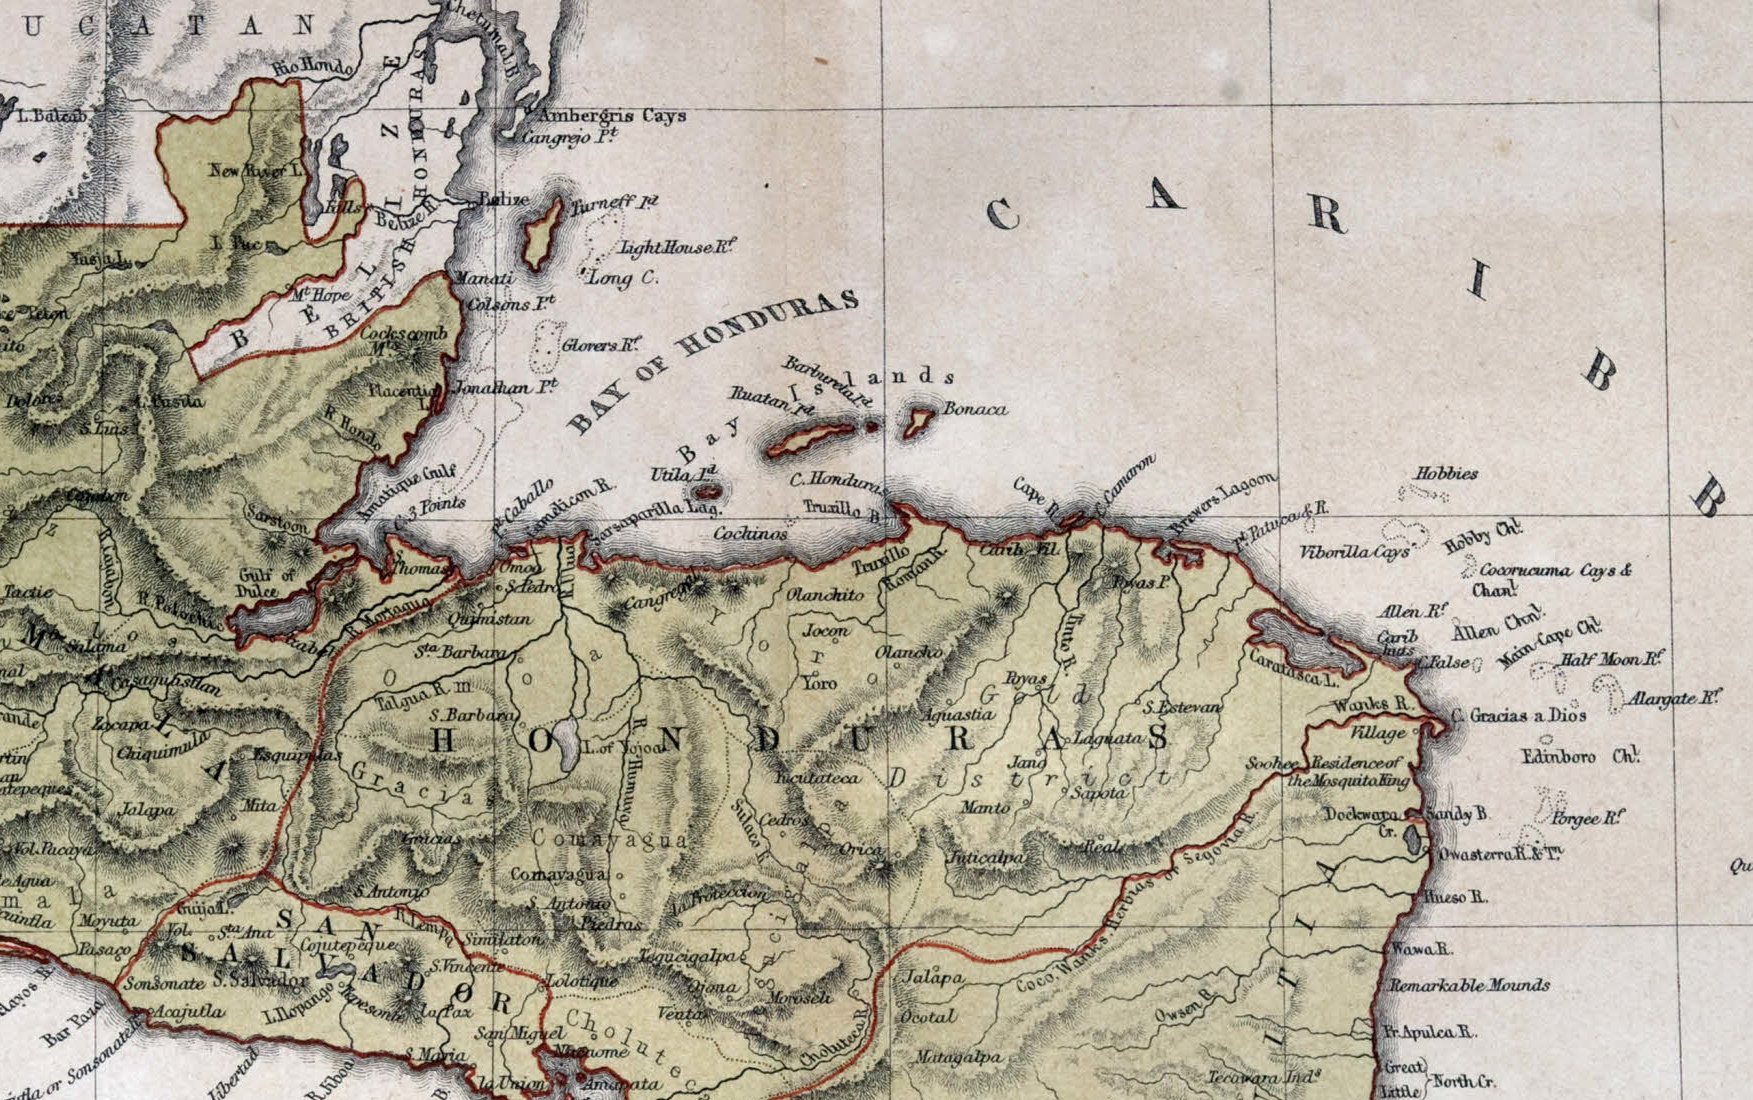 Old map of Central America, 1870